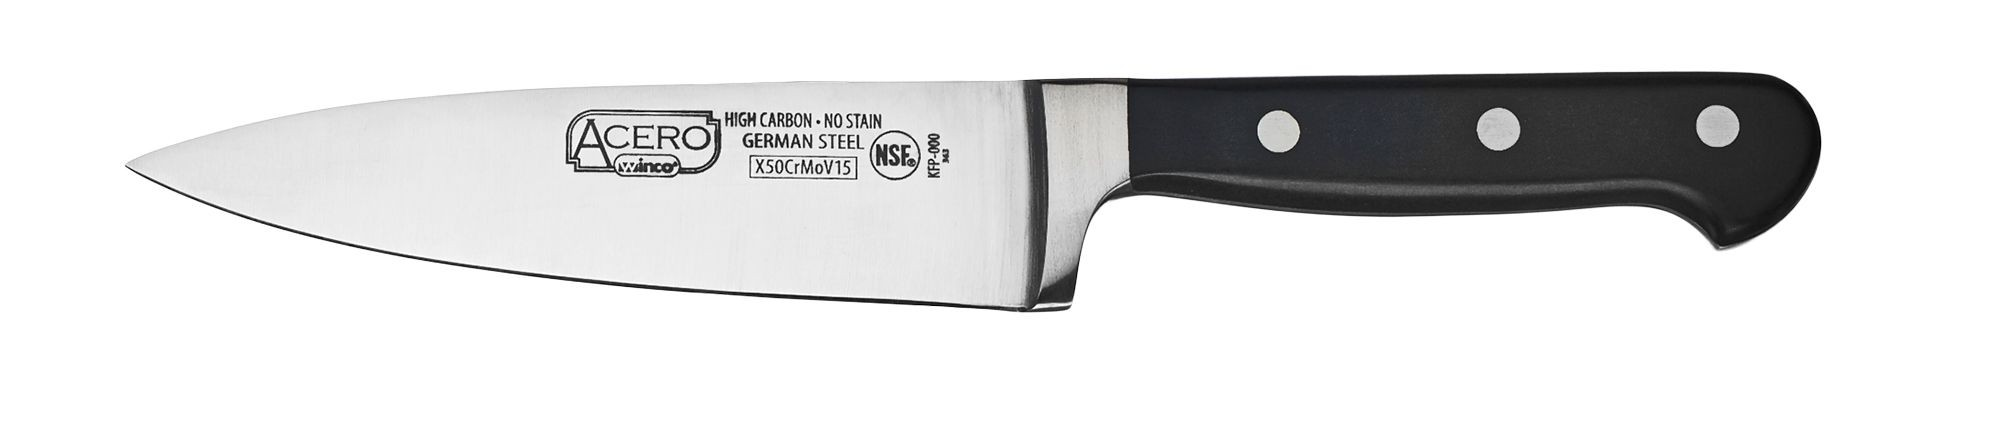 Winco Kfp-60 Chef Knife 6""